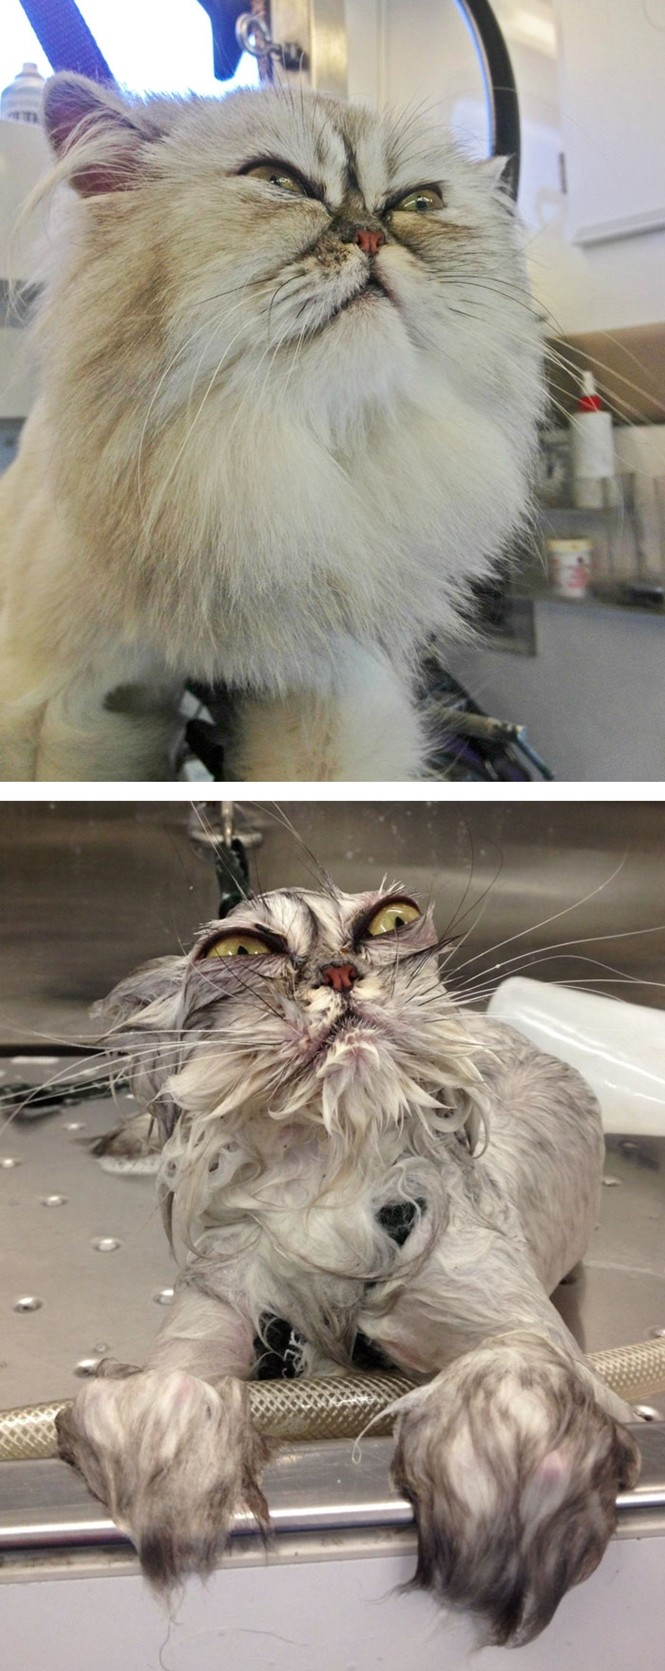 The before and after, pet bath comp. Got this off of Facebook today. The source is Bored Panda. boredpanda.com/funny-wet-pets-before-after-bath-dogs-cats.